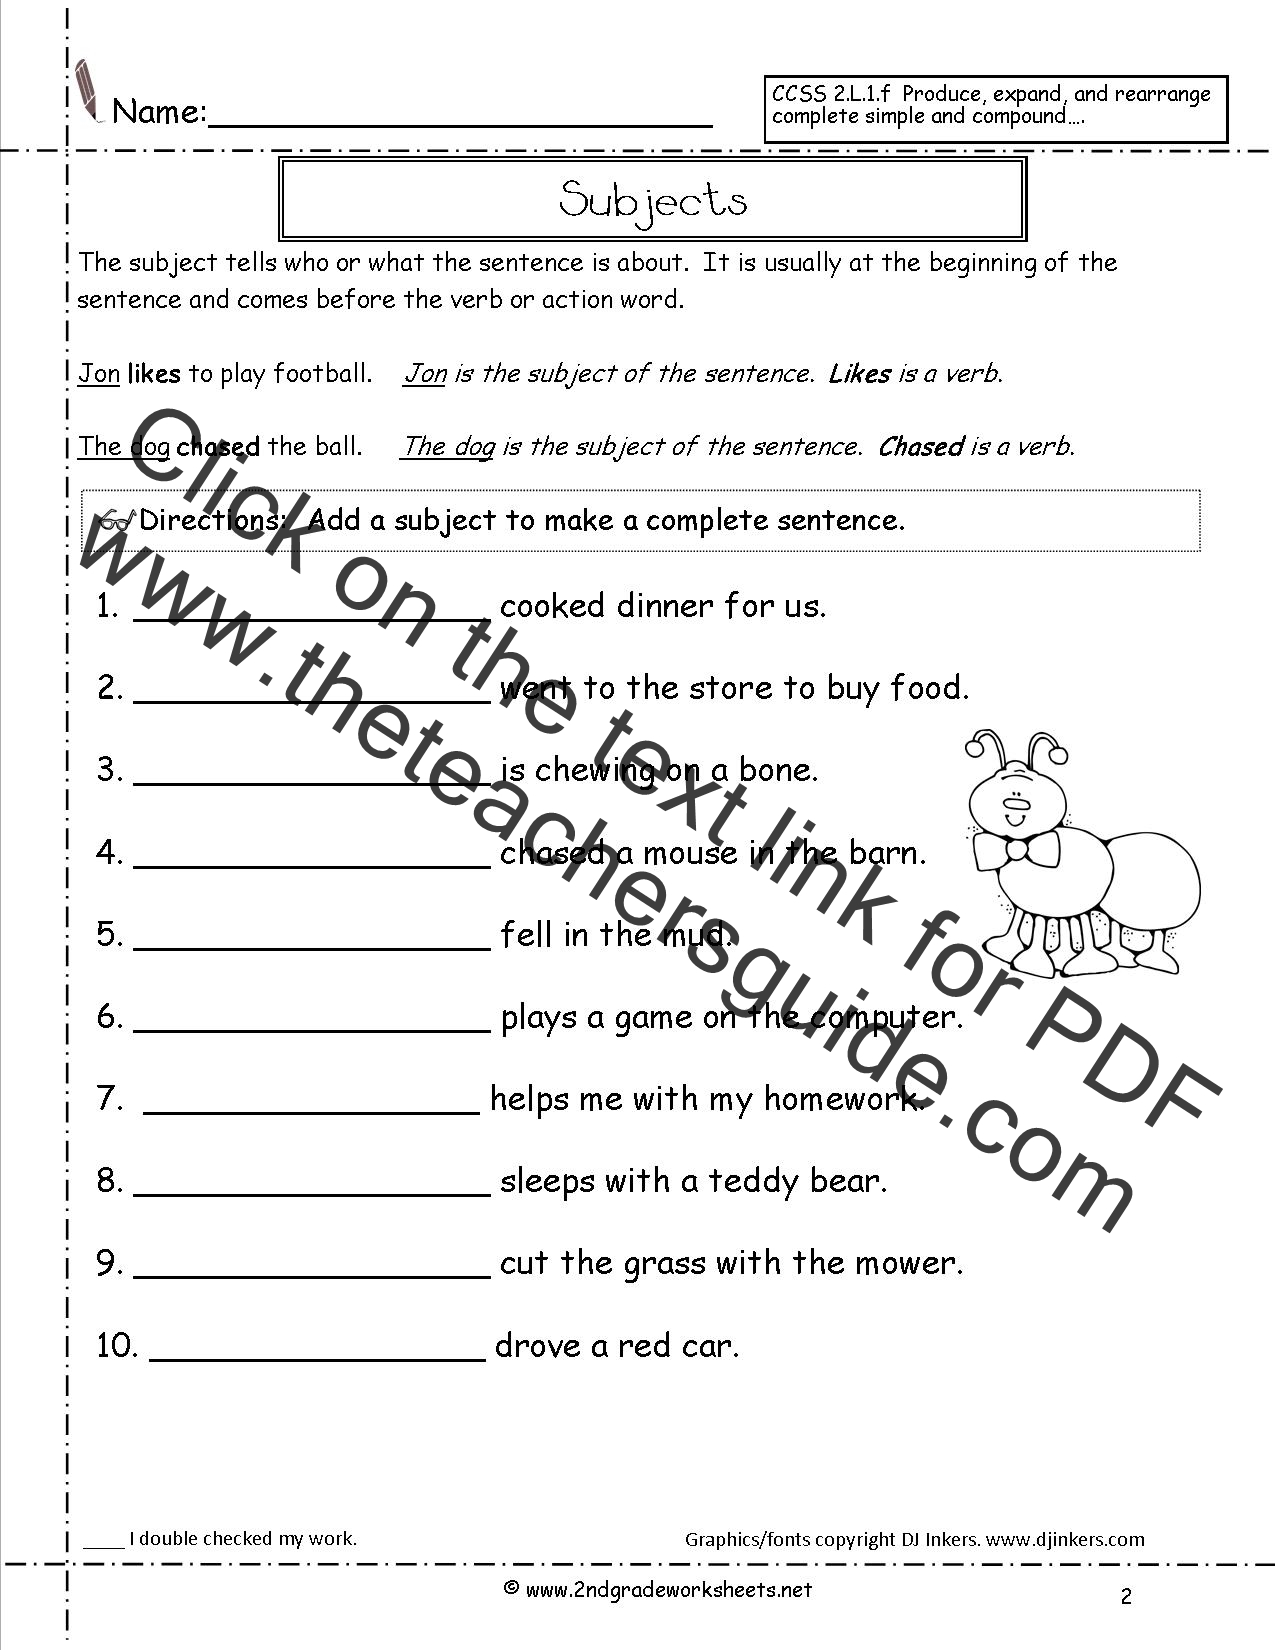 Second Grade Sentences Worksheets, Ccss 2 L 1 F Worksheets 4 Types Of Sentences PDF Subjects Worksheet Sentence Worksheet Subjects